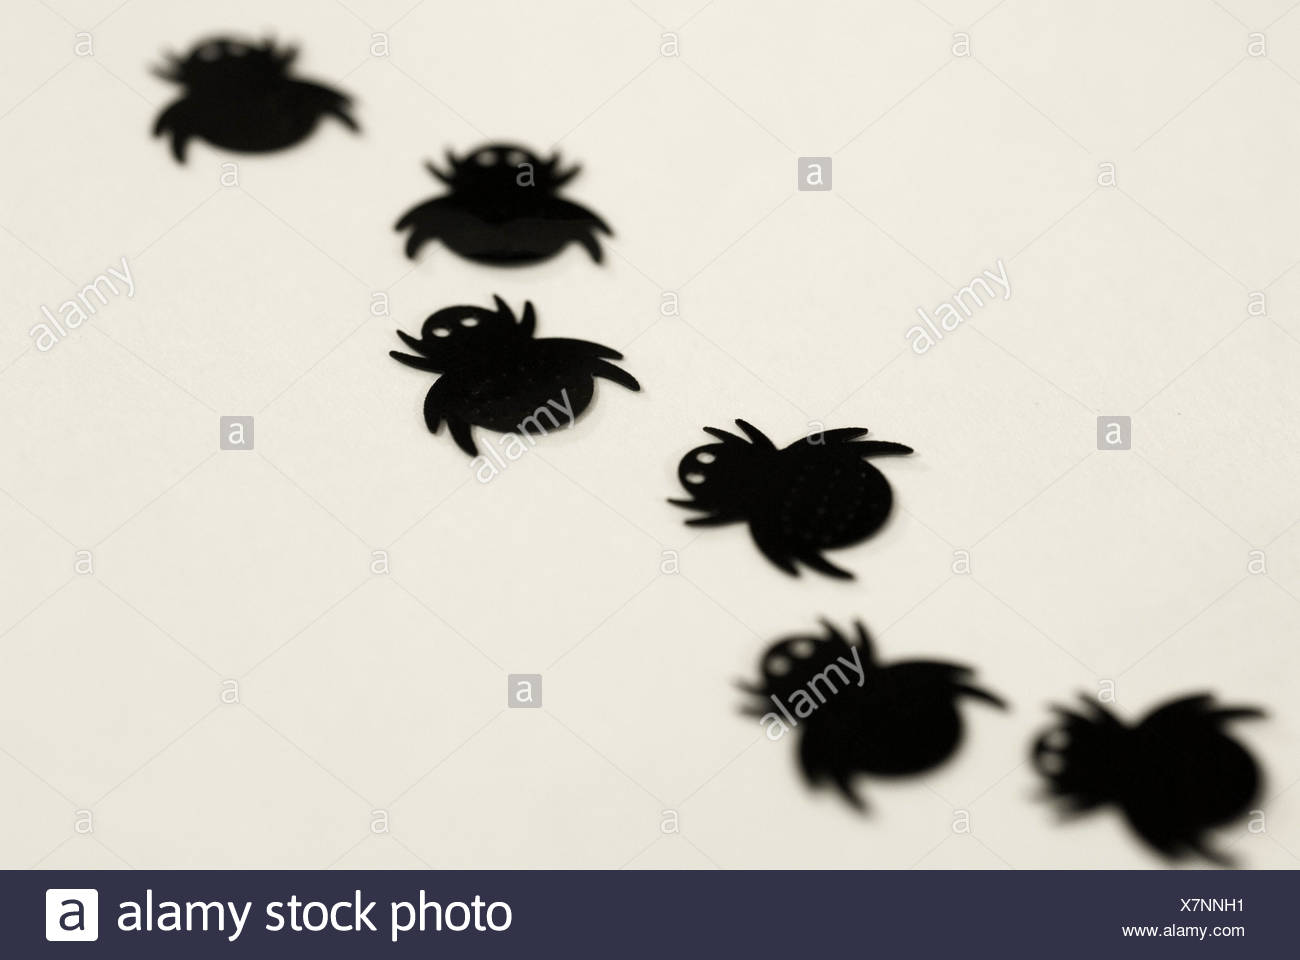 creepy crawly - Stock Image